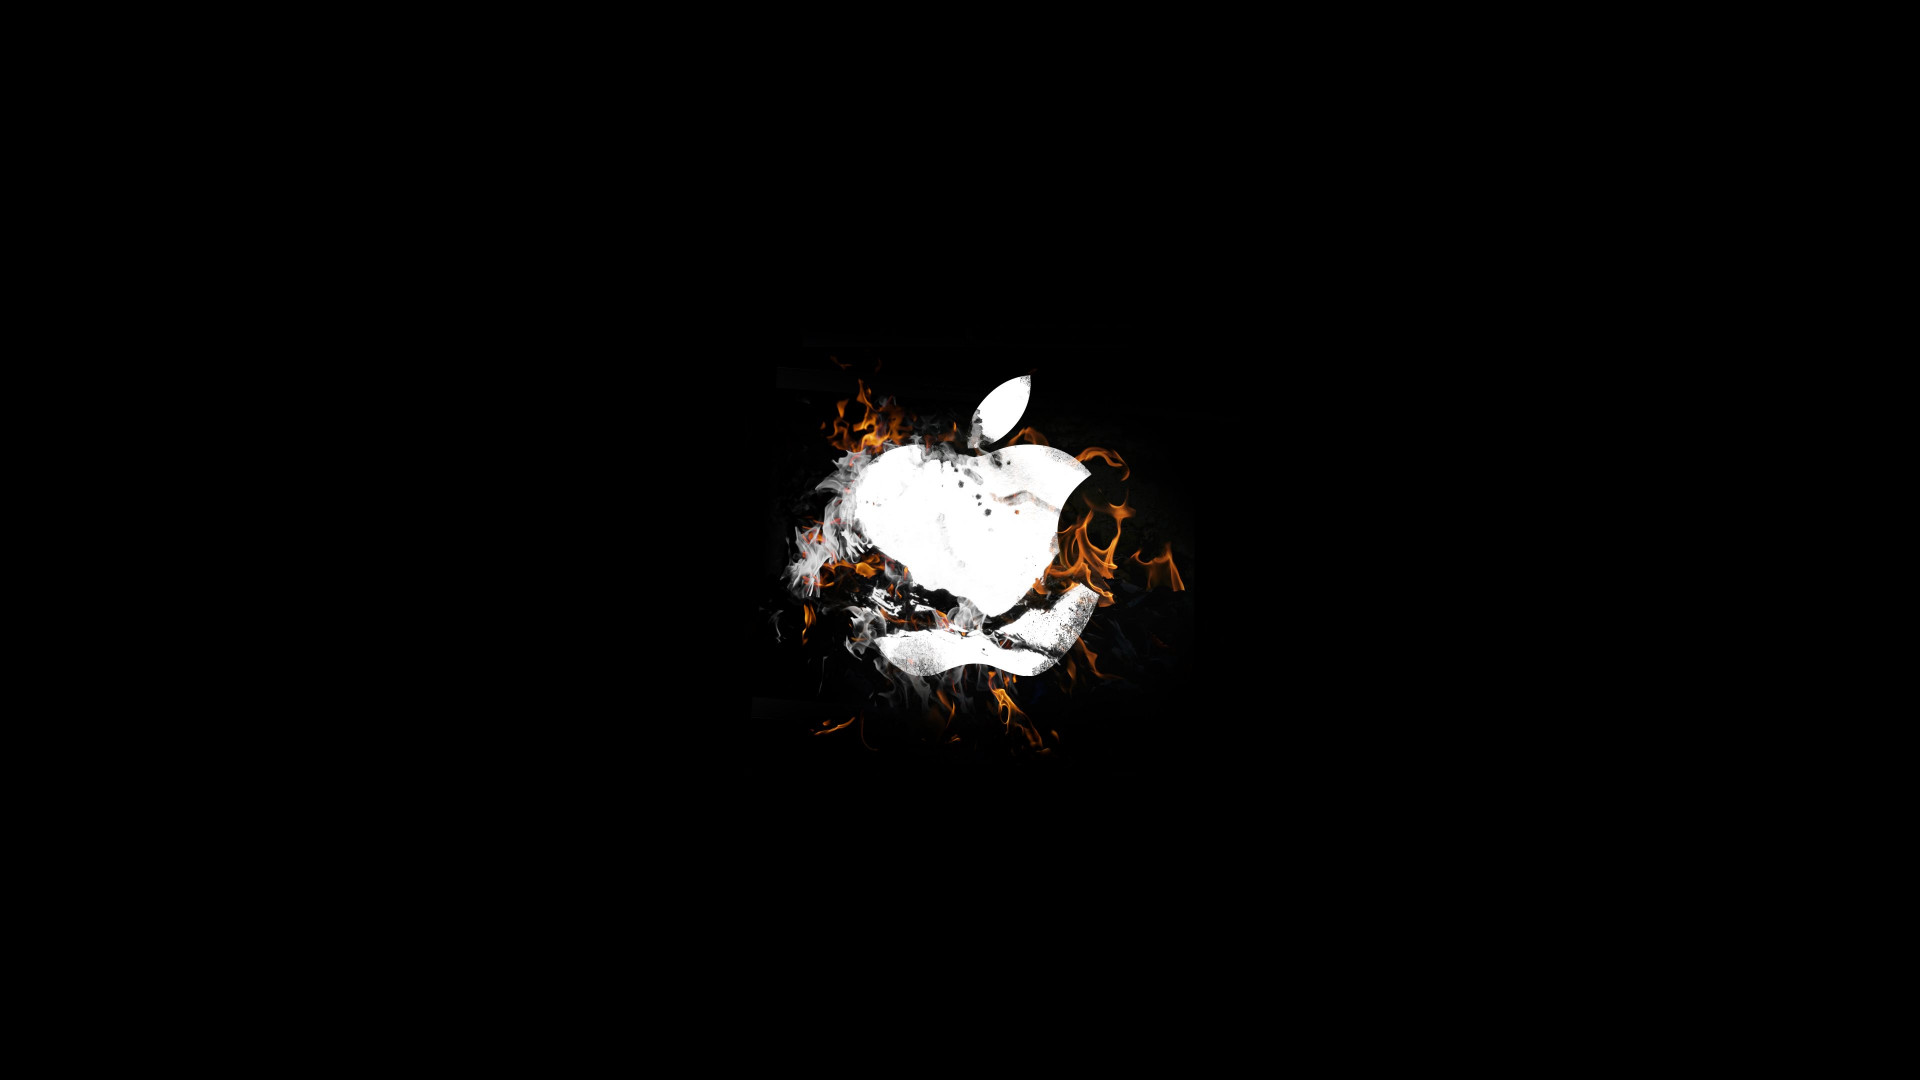 The Apple is on fire wallpaper 1920x1080